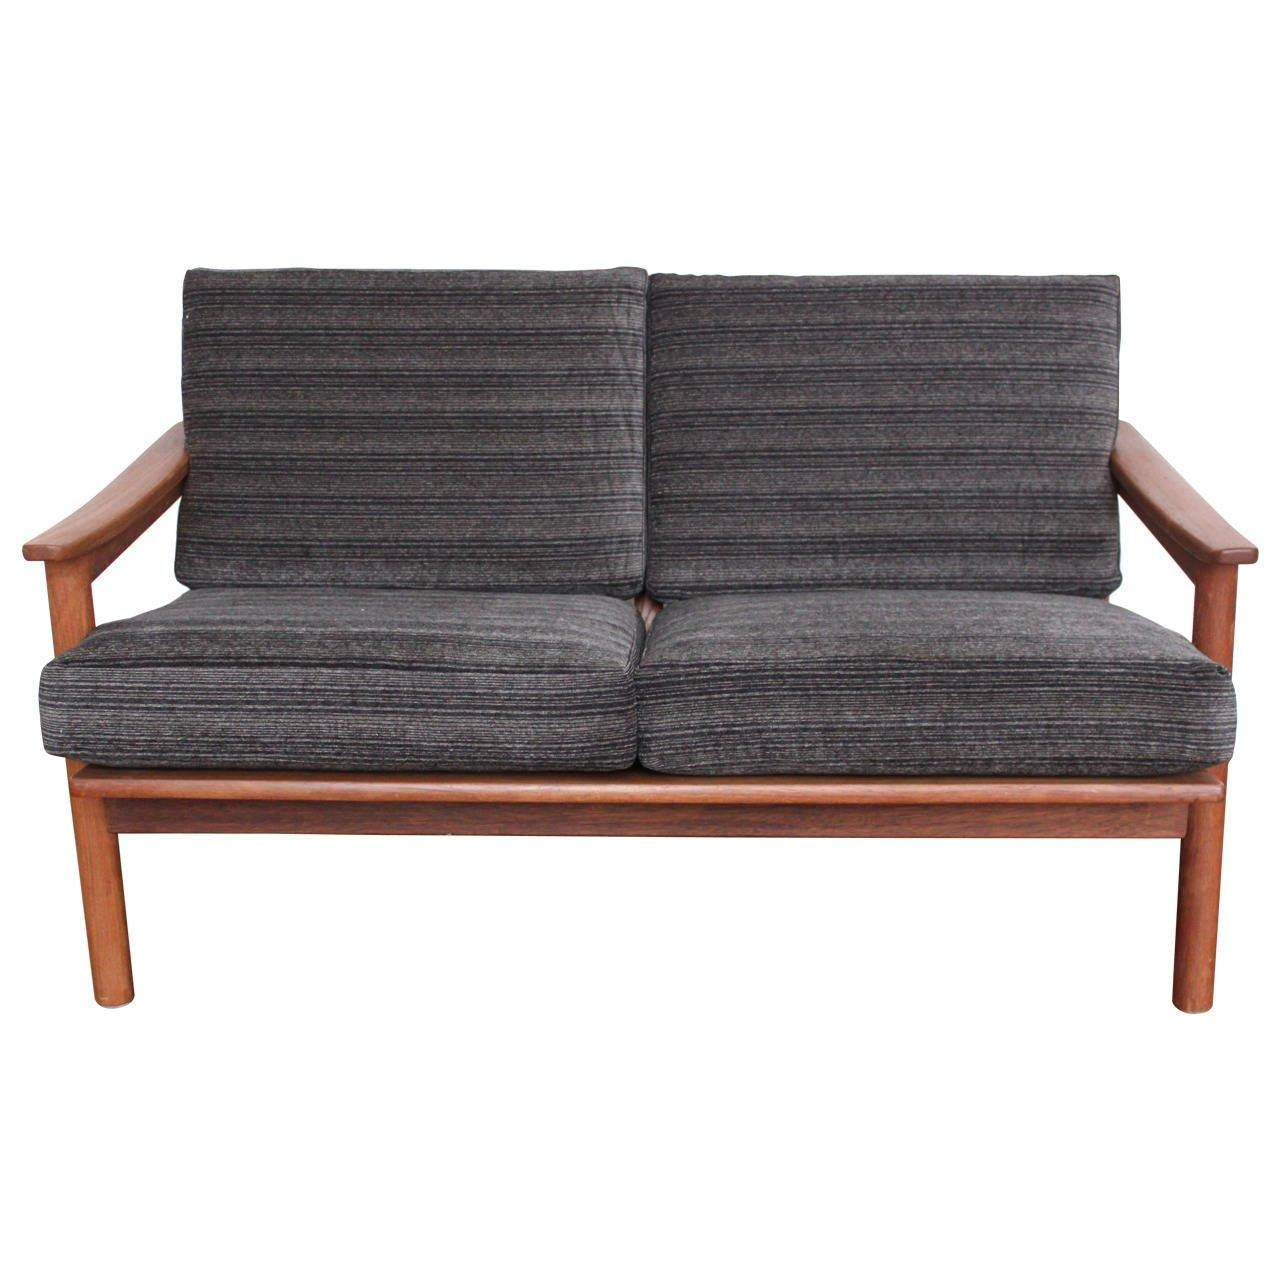 Mid Century Modern Danish Teak Loveseat Sofa At 1Stdibs Within Modern Danish Sofas (View 17 of 20)